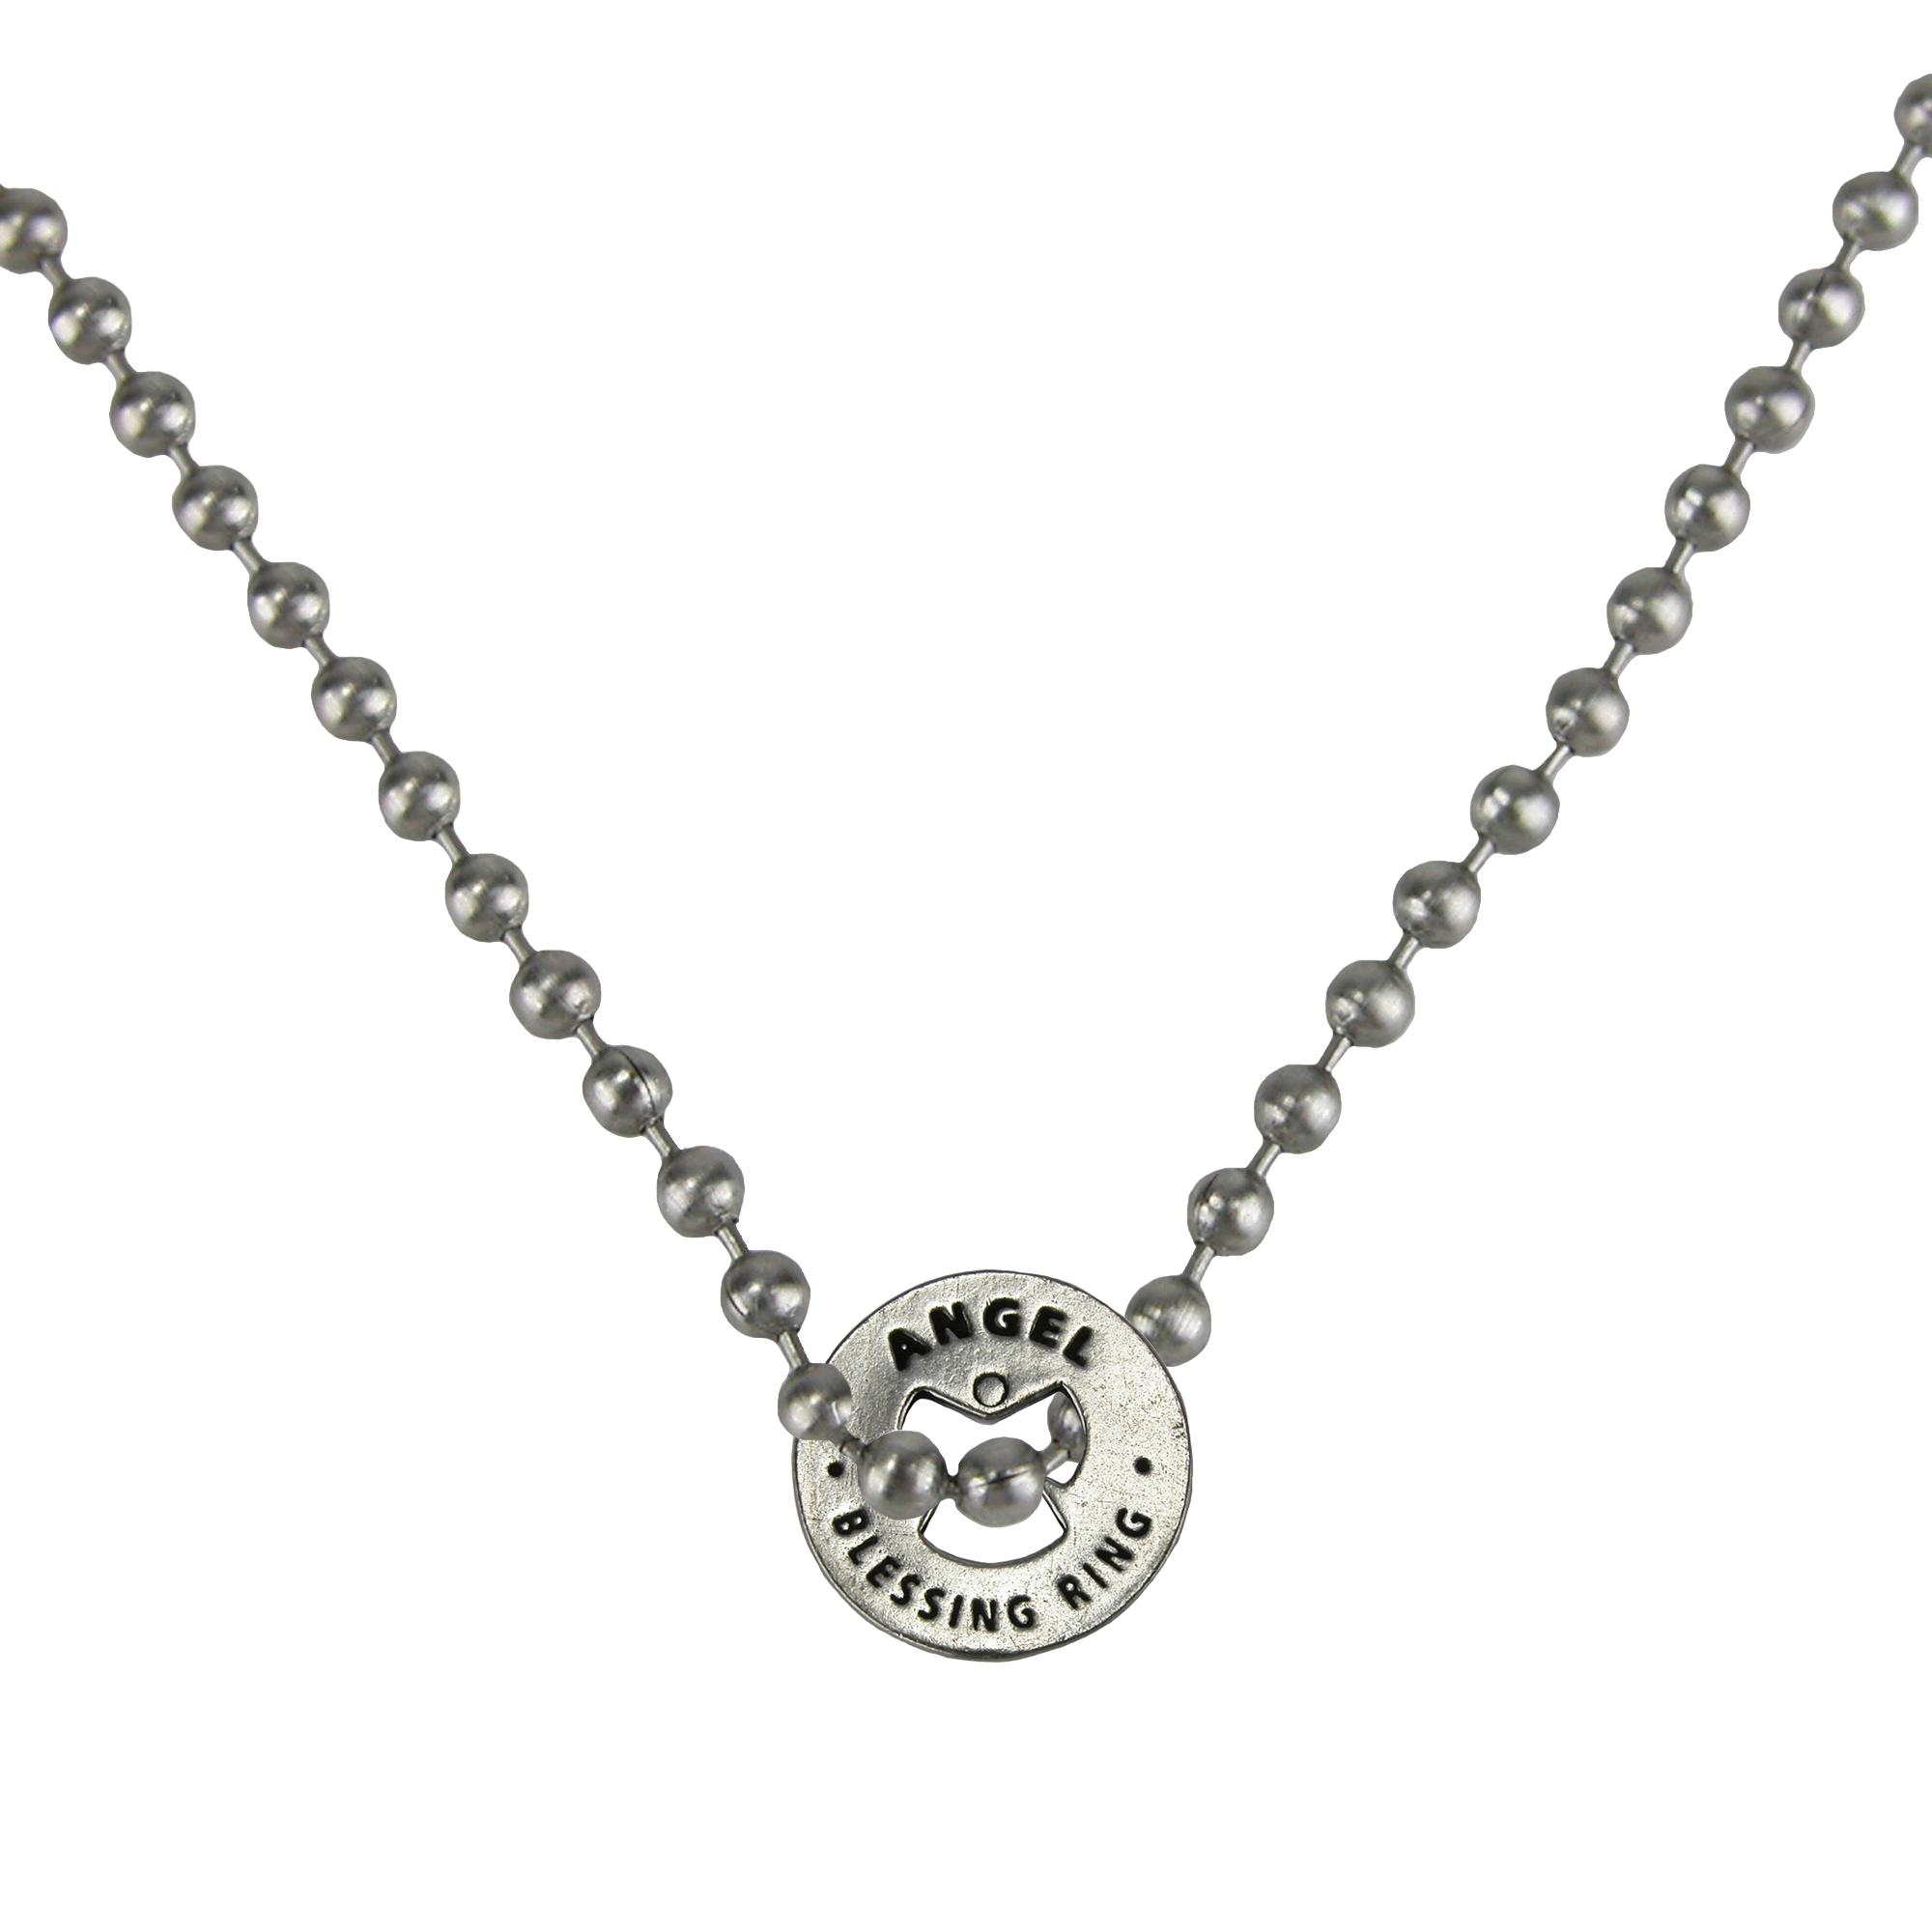 Whitney Howard Designs Angel Blessing Protection Pendant Chain Necklace